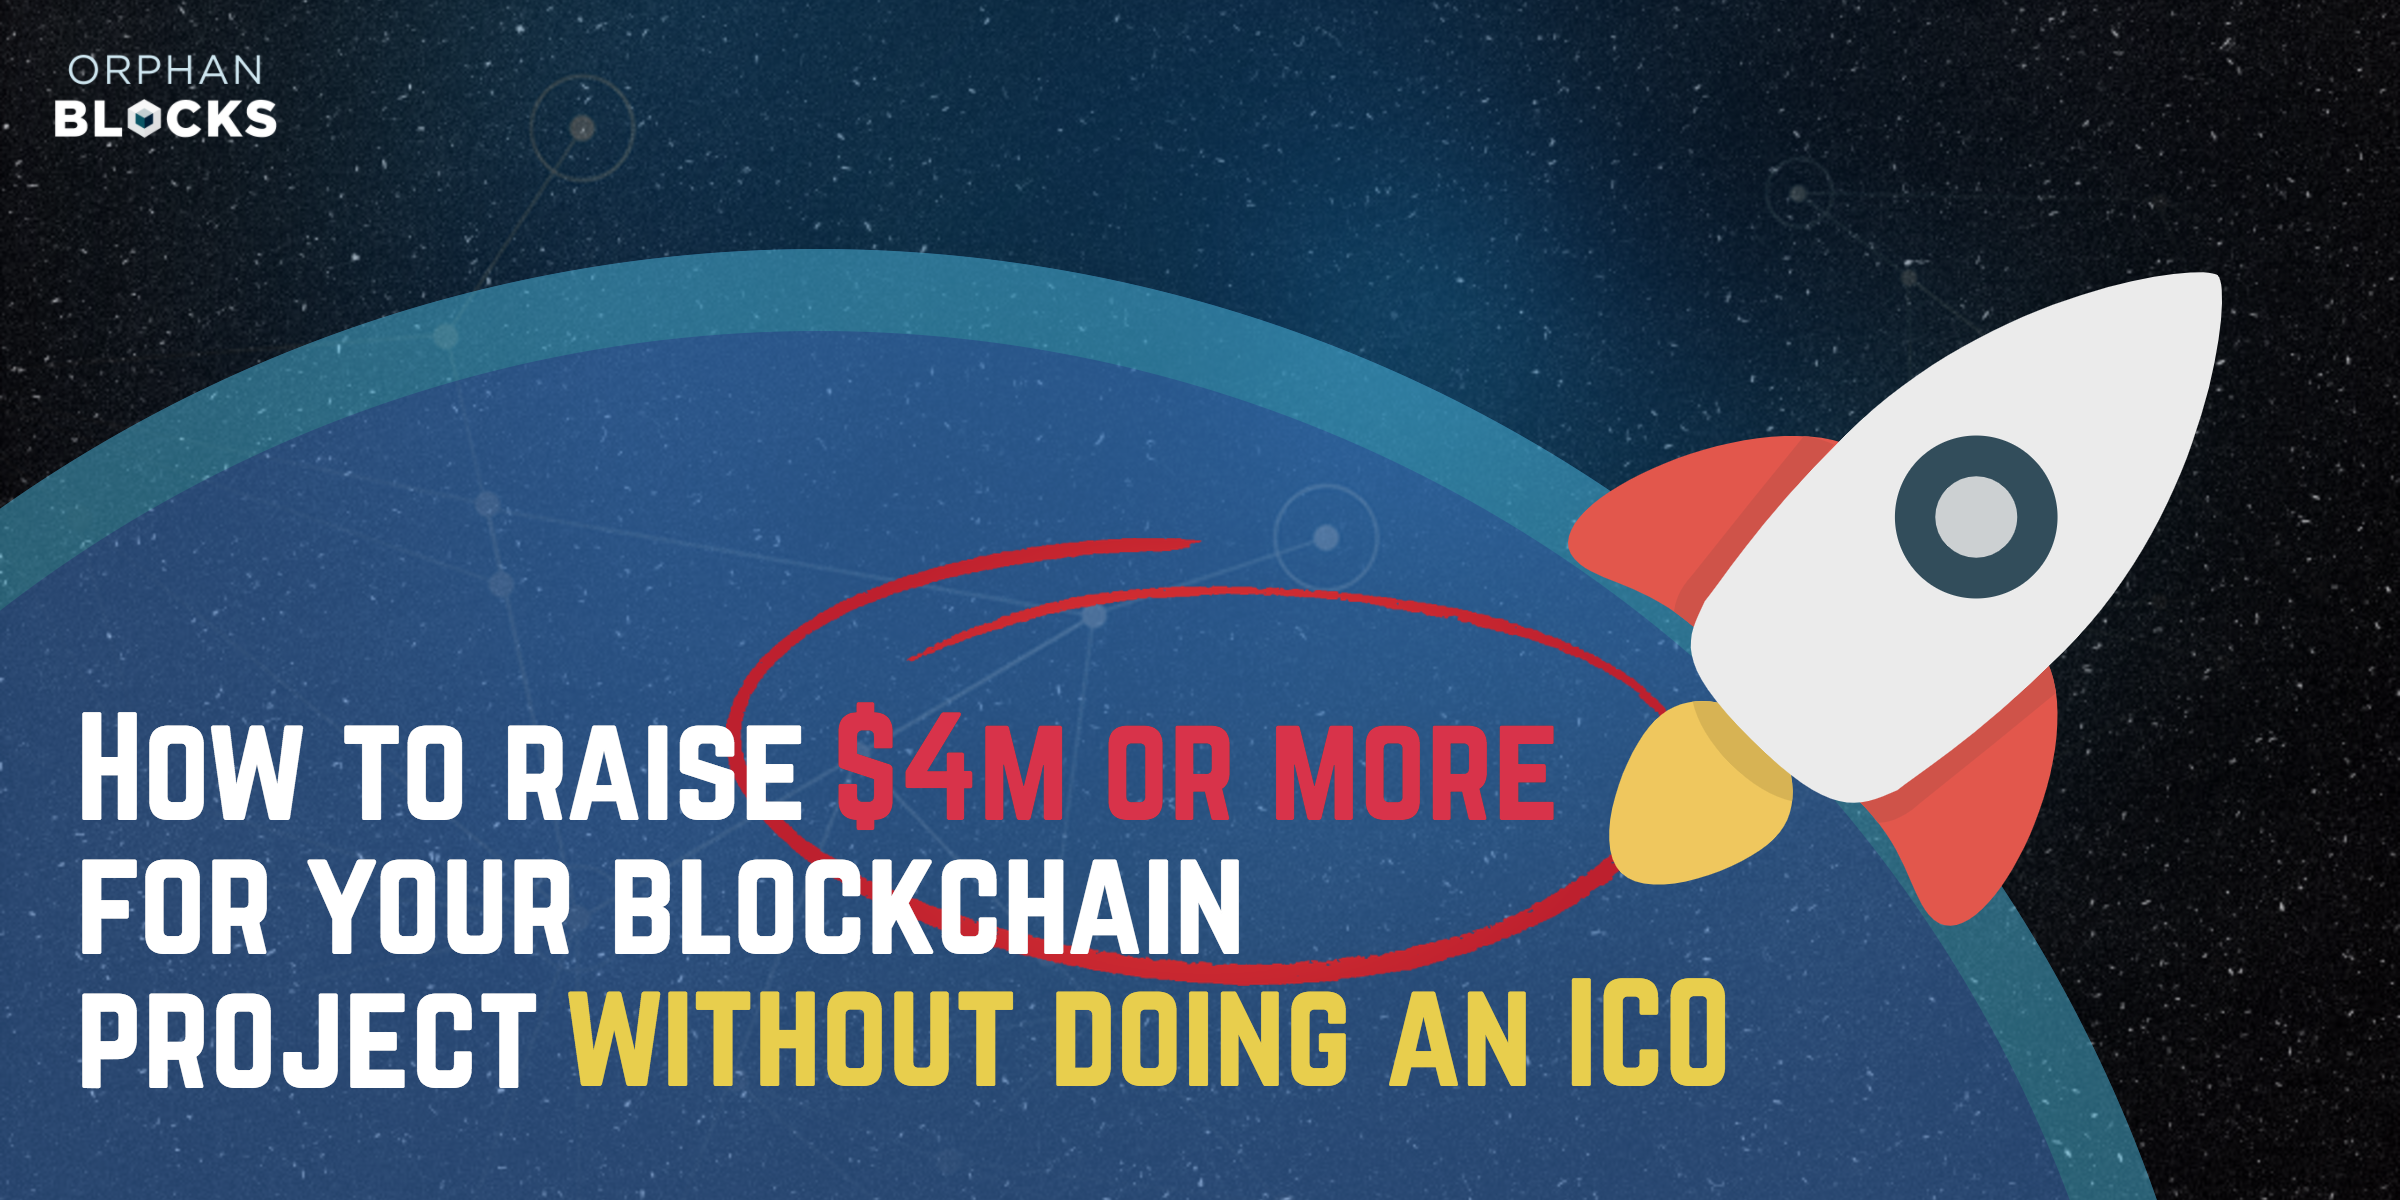 The complete guide to raising $4m or more for your blockchain